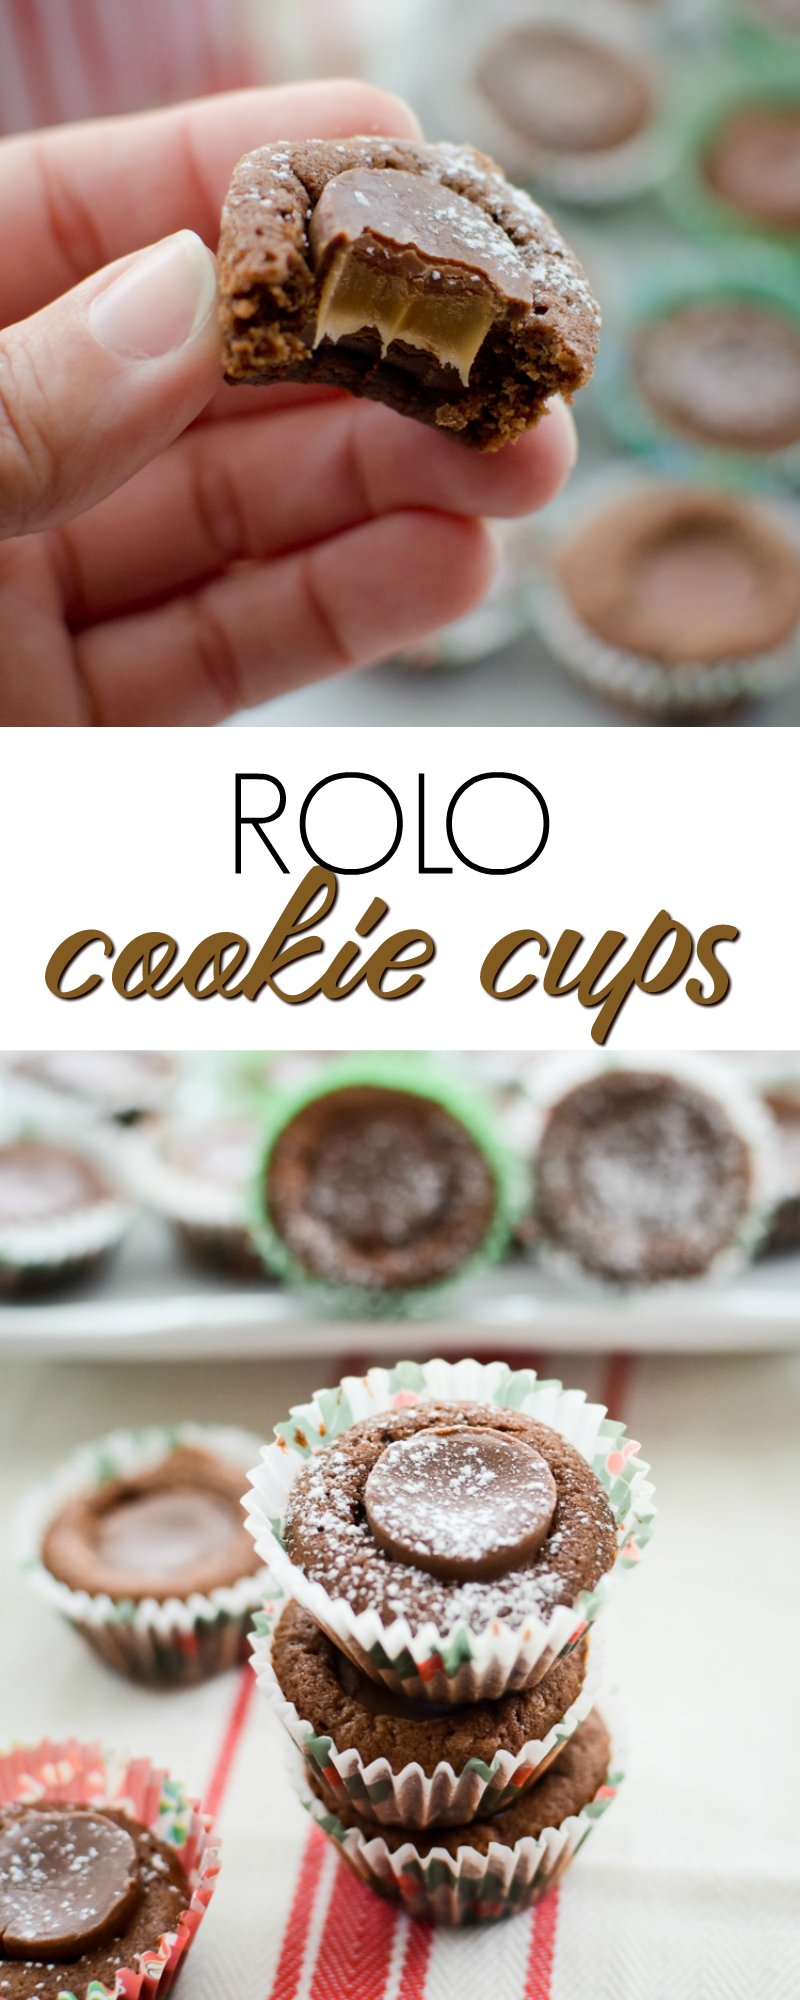 rolo-cookie-cups